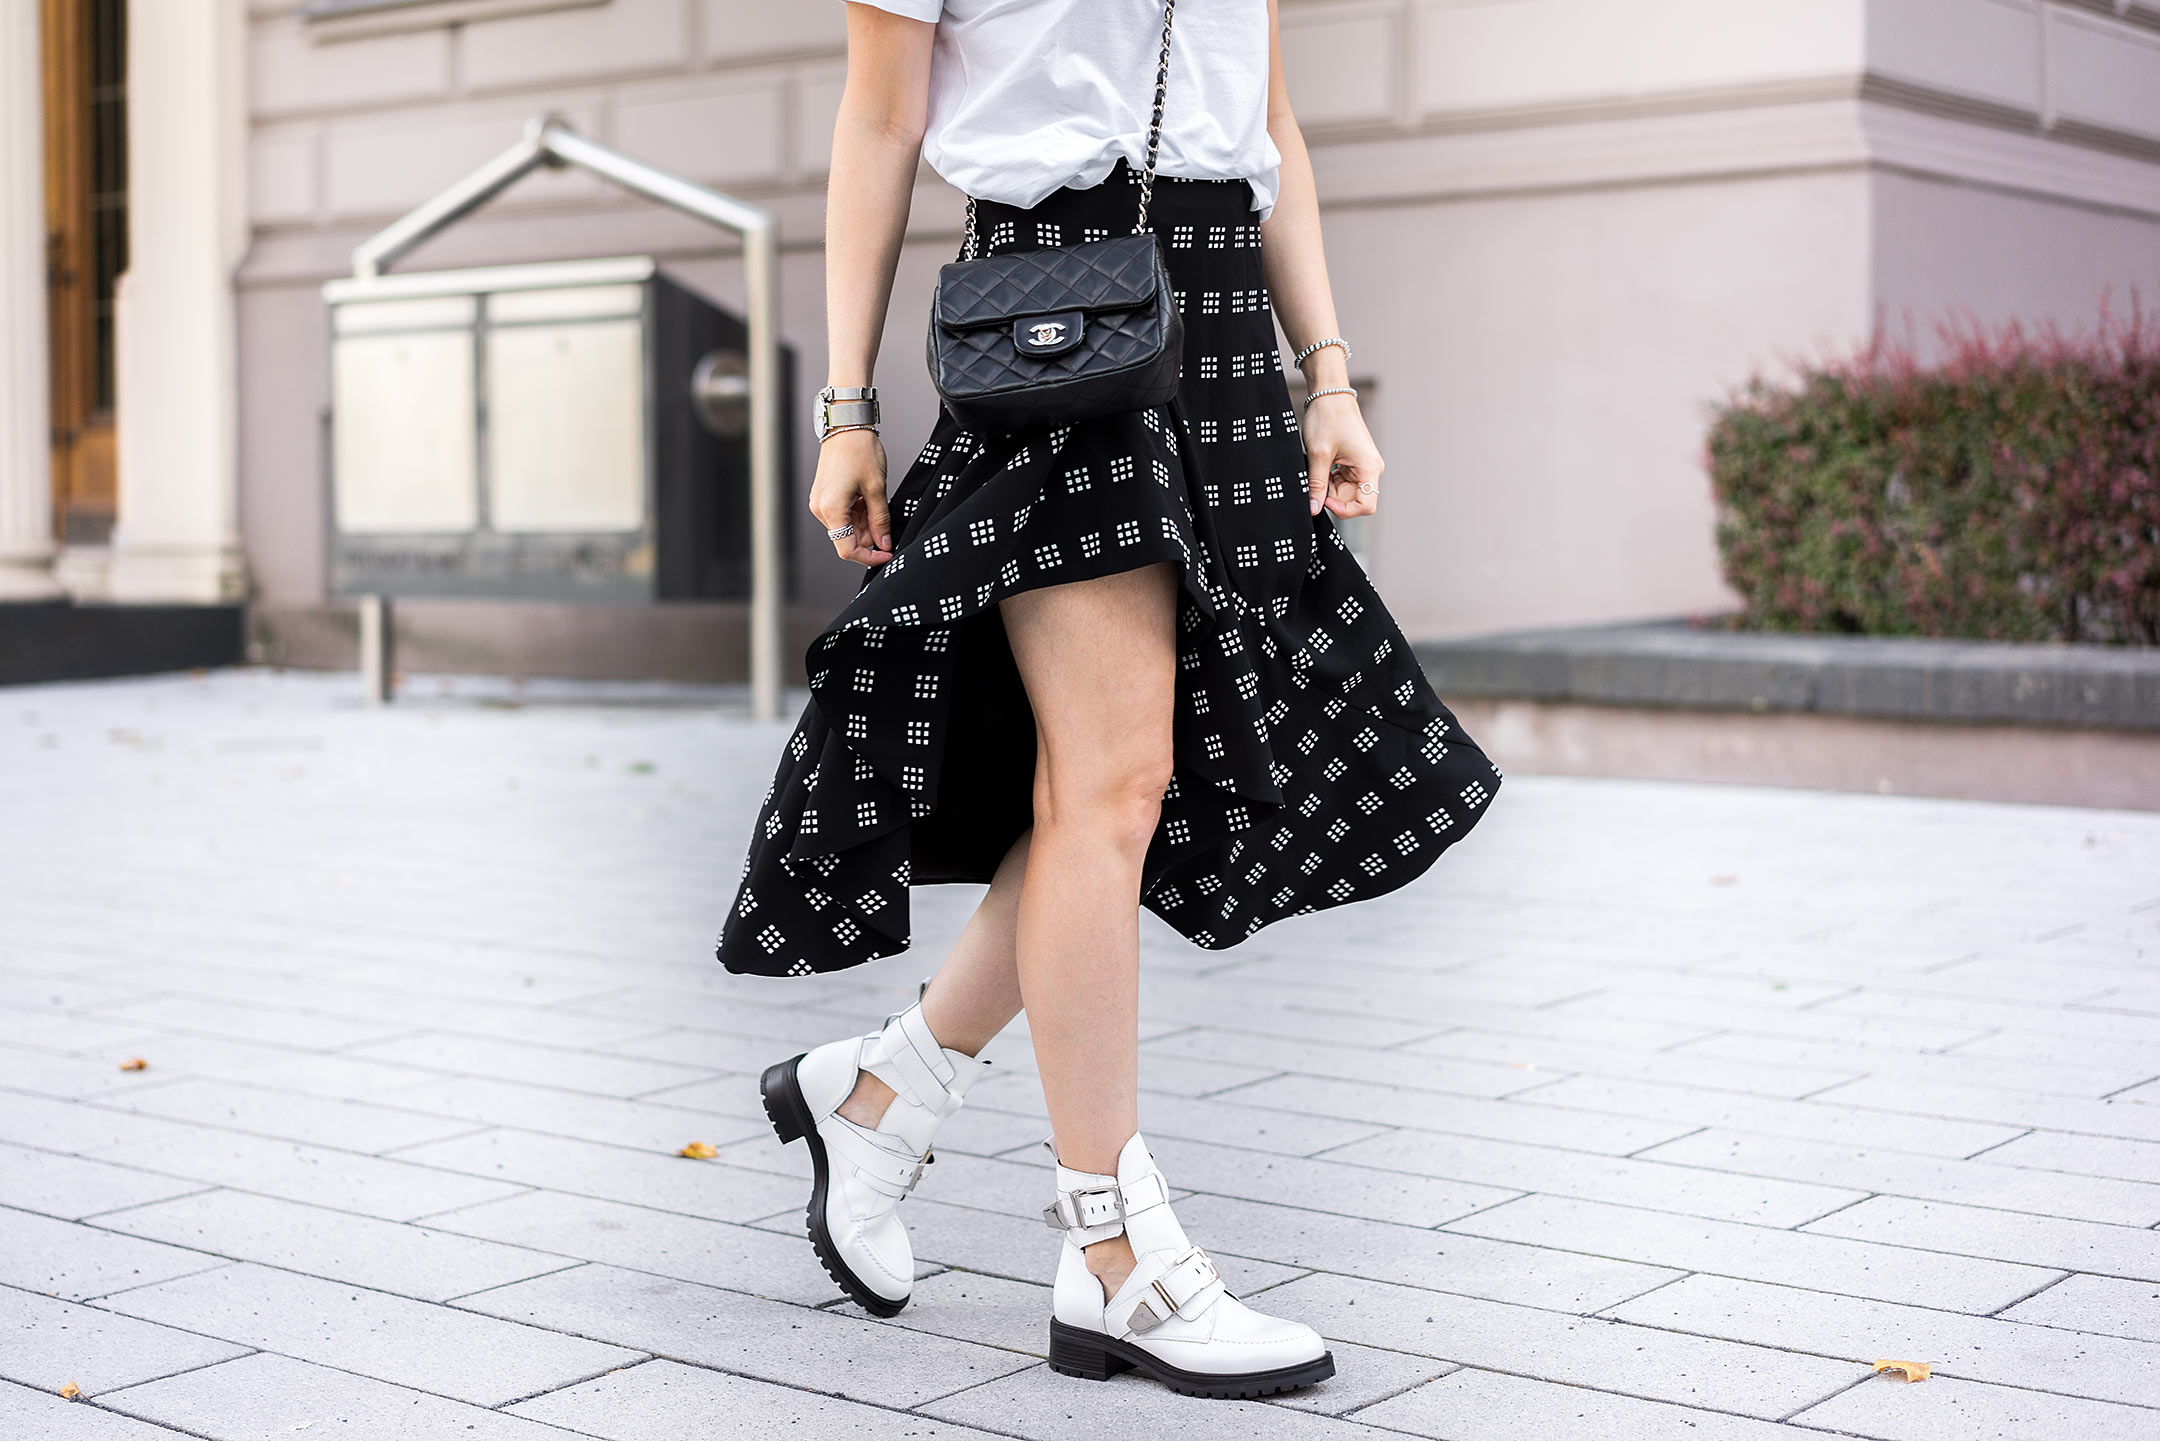 Sacha Blog Cut Boots Schuhe Out W Fashion Sunnyinga QdCBrtshx